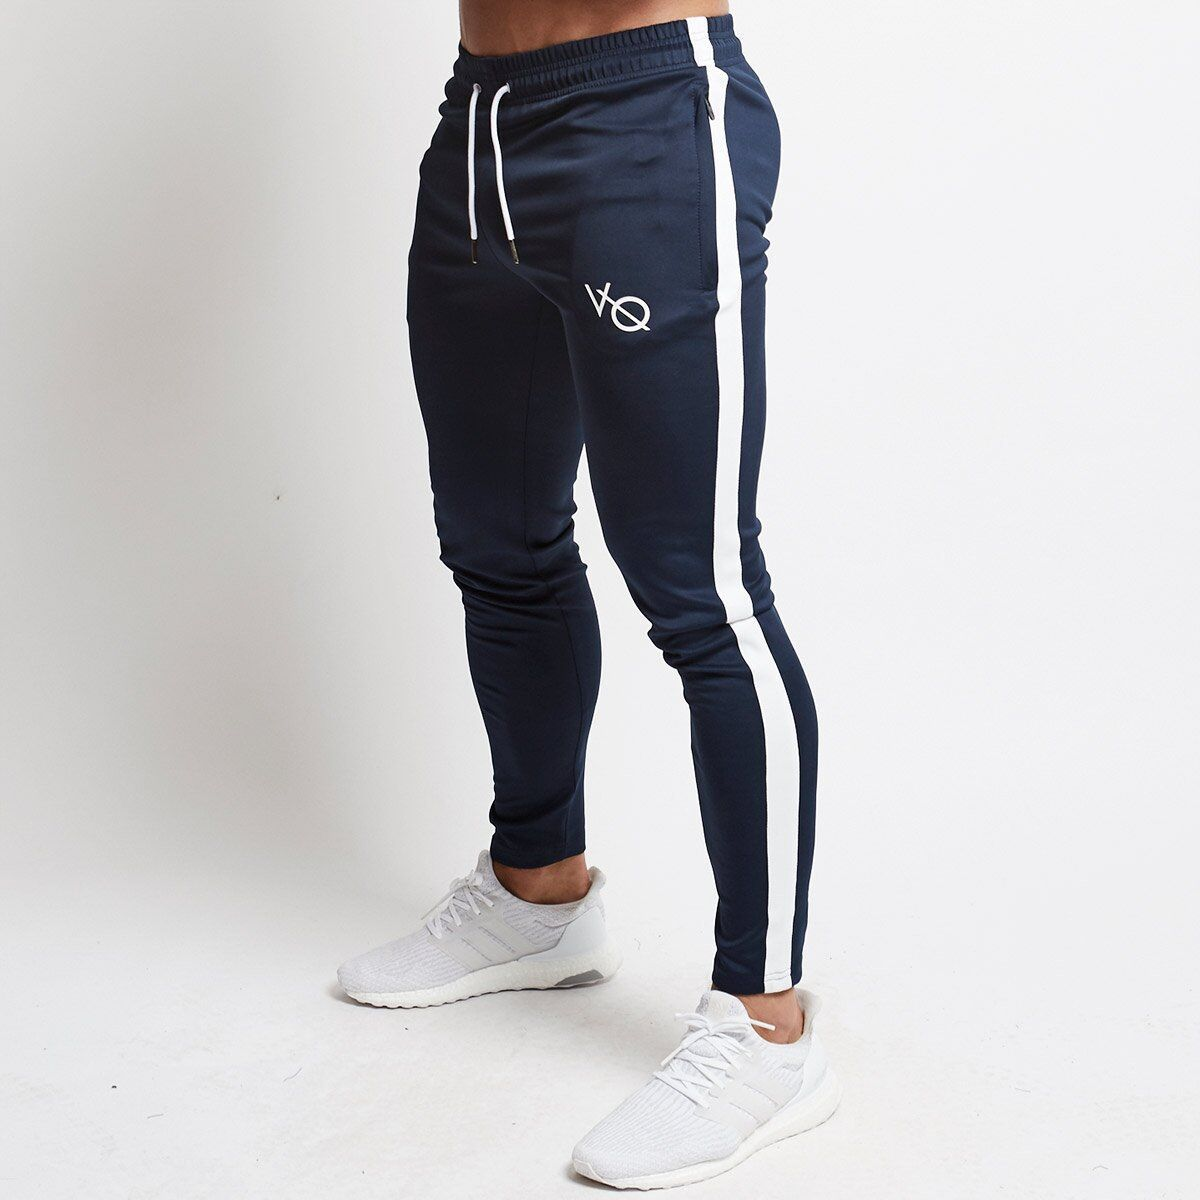 Muscle Brother Spring And Autumn New Style VQ Cotton Sports Fitness Trousers Casual Running Skinny Pants